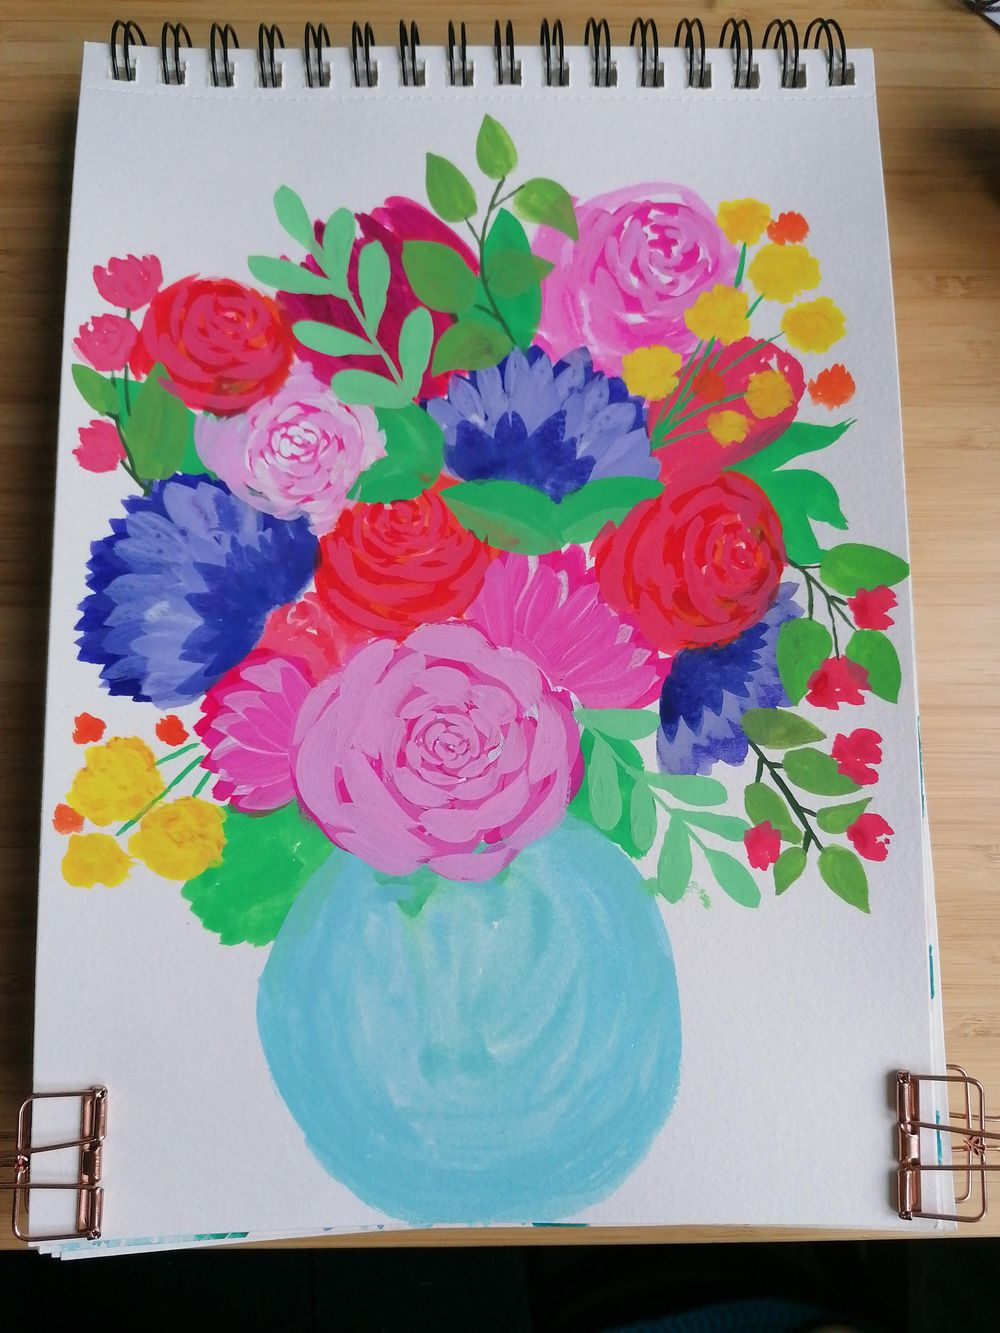 Flower bouquet with gouache - image 3 - student project